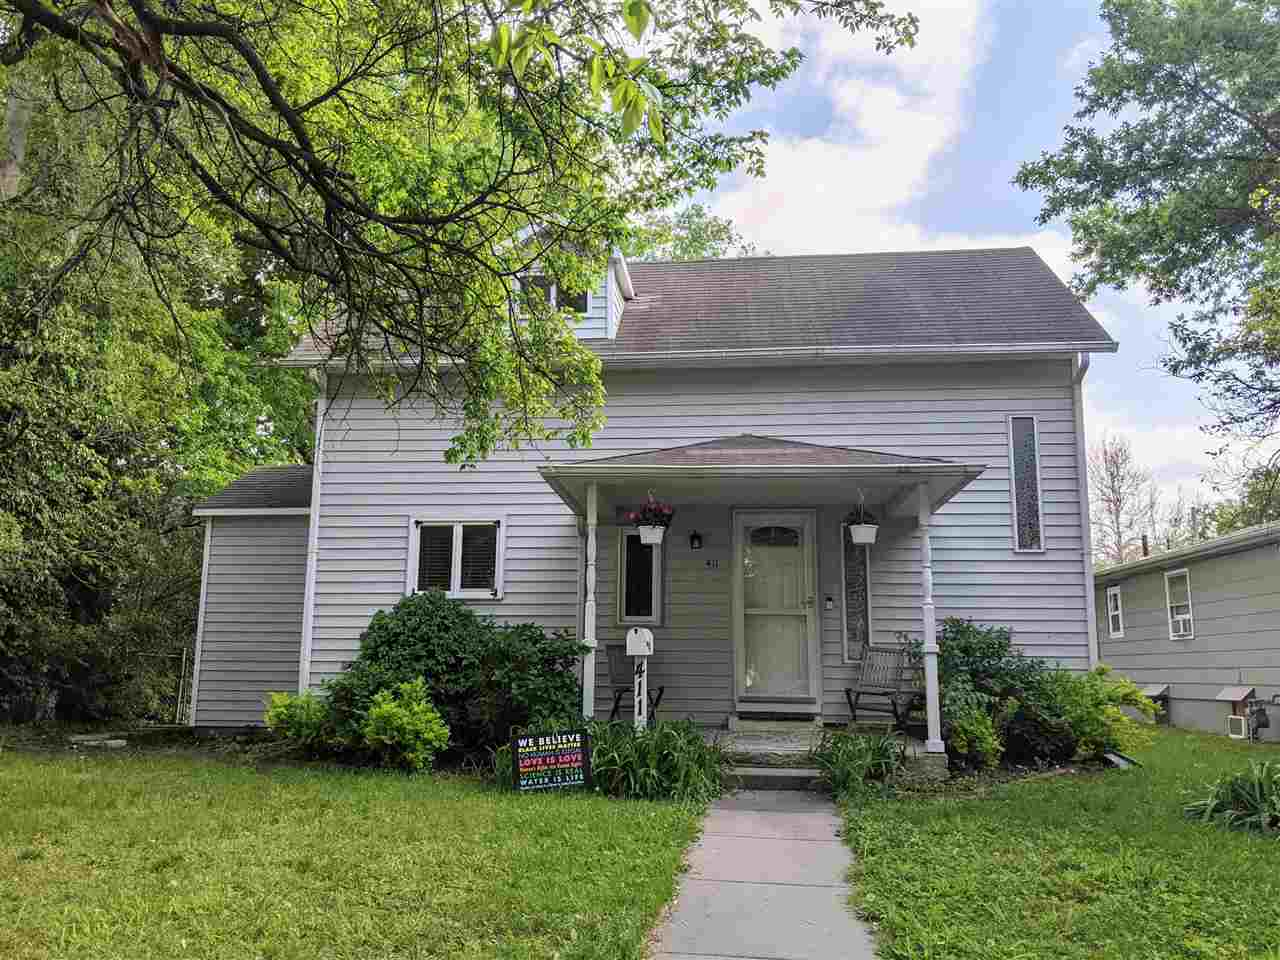 Charming 2 bedroom, 1.5 bathroom home located in central Manhattan. This location is ideal as it is within walking distance to local shops, schools, and K-State. This home offers plenty of space and charm. The foyer and living room are big and open. The eat-in kitchen has the perfect spot for a dining table. There is a half bathroom on the main floor for convenience. Upstairs is the master bedroom, updated, full bathroom, and second bedroom. The basement offers room for storage and a safe place to go during a storm. The backyard is fully fenced, has a storage shed, lots of room to run around and enjoy the outdoors, and has alley access and extra parking. Don't let this one get away from you. Call Lauren at 785-564-2693 to schedule your showing today!